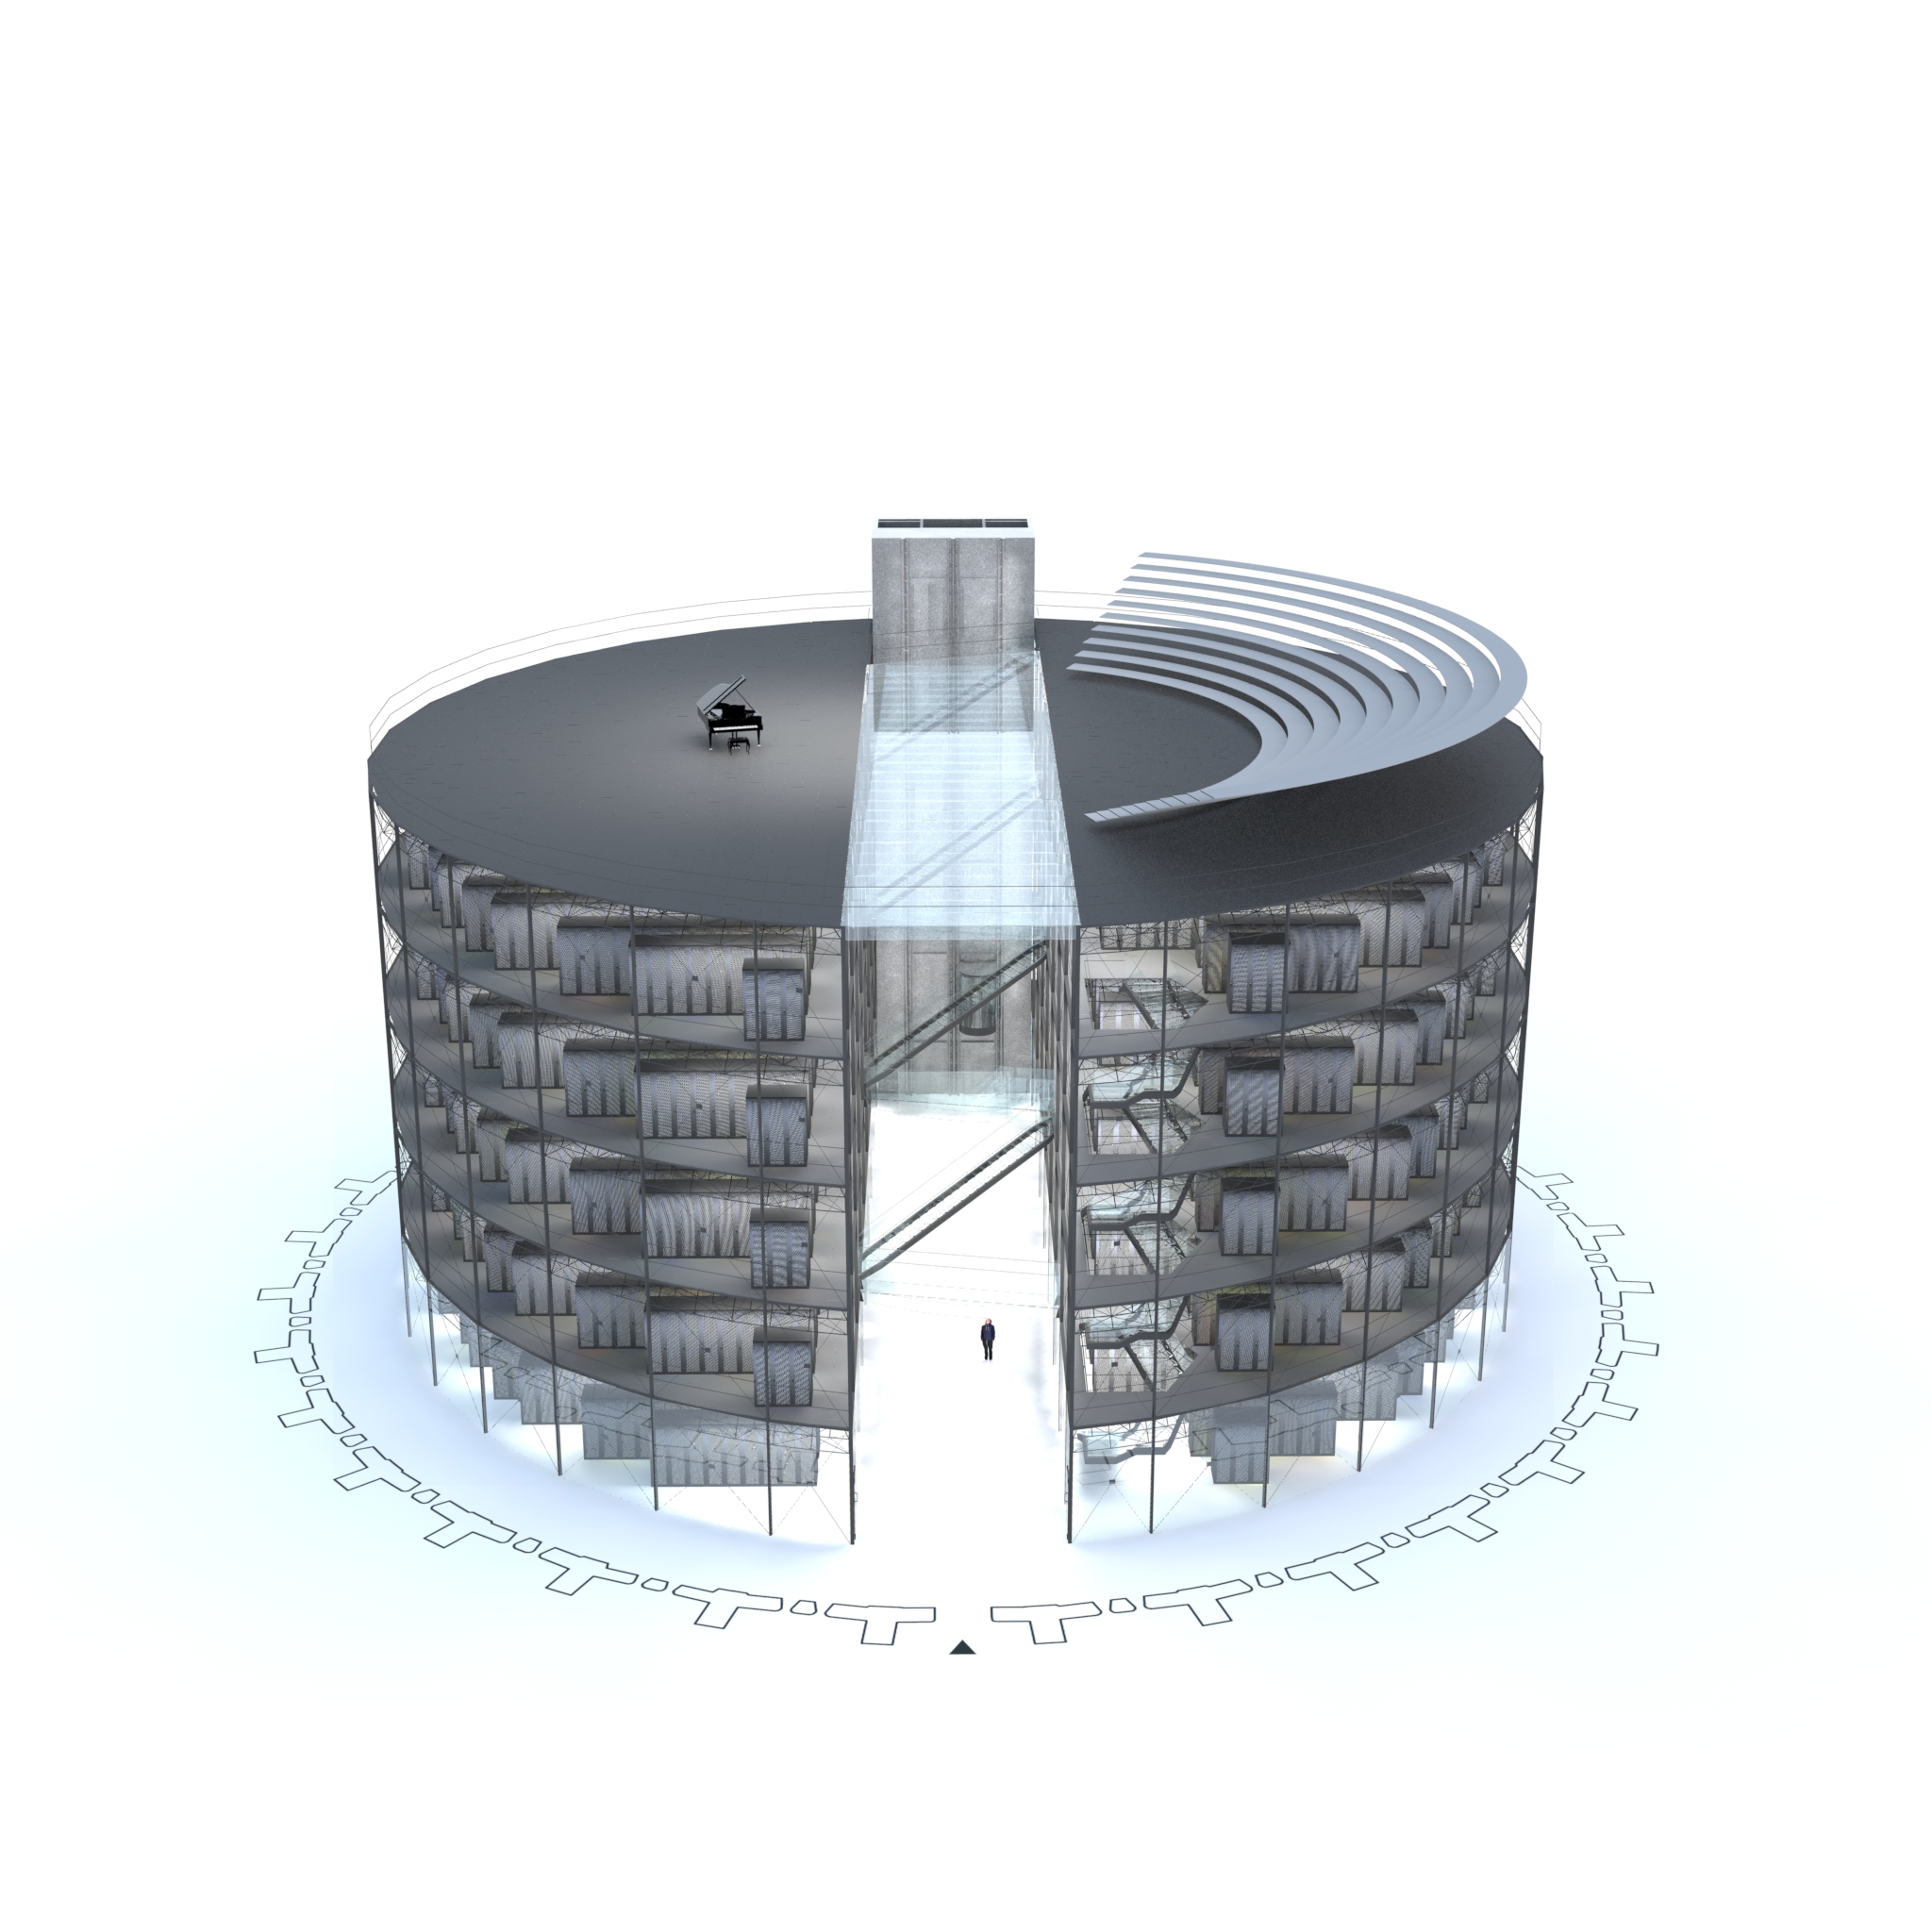 Gasometer proposal from architect Albert France-Lanord